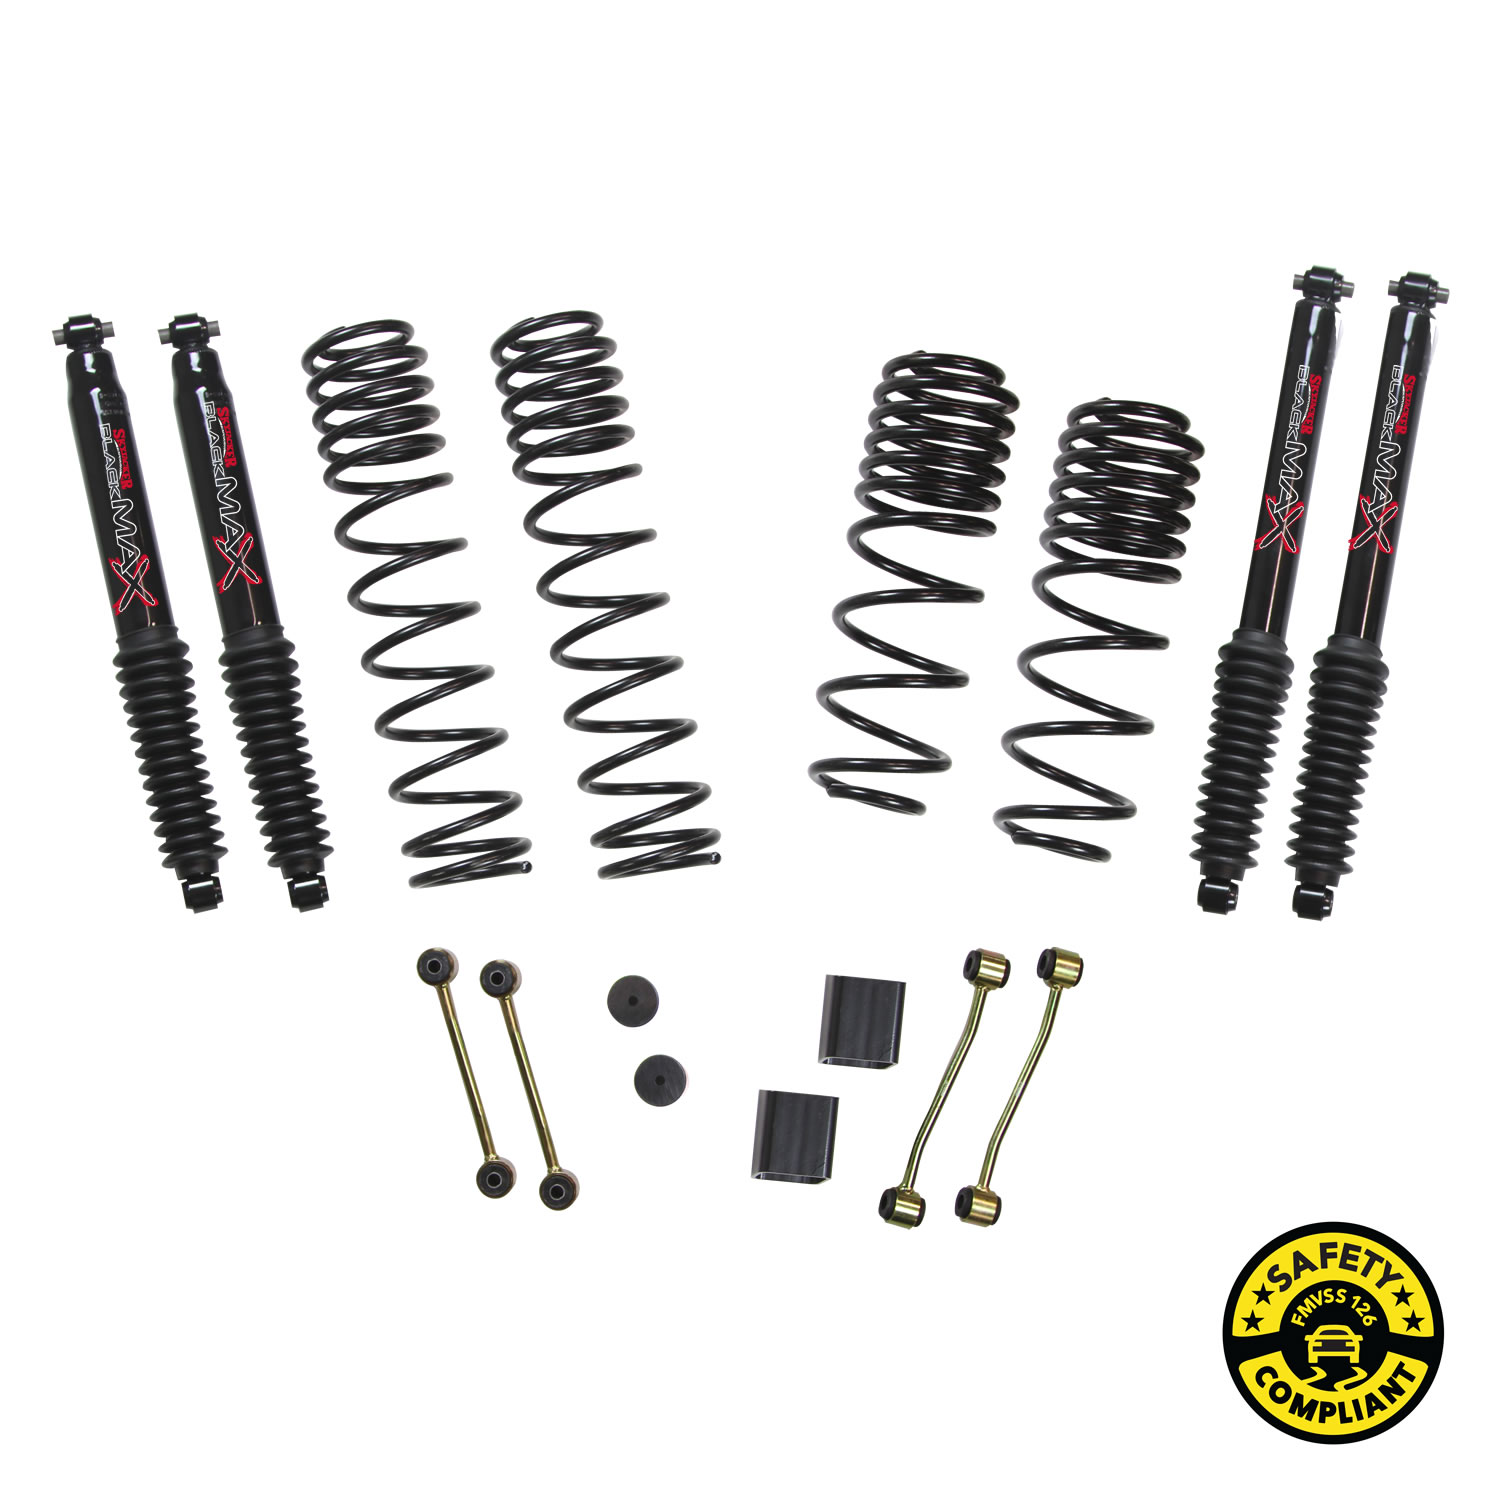 hight resolution of jl20bpblt jeep wrangler jl 2 door 4wd 2 2 5 in dual rate long travel lift kit system with black max shocks skyjacker suspensions